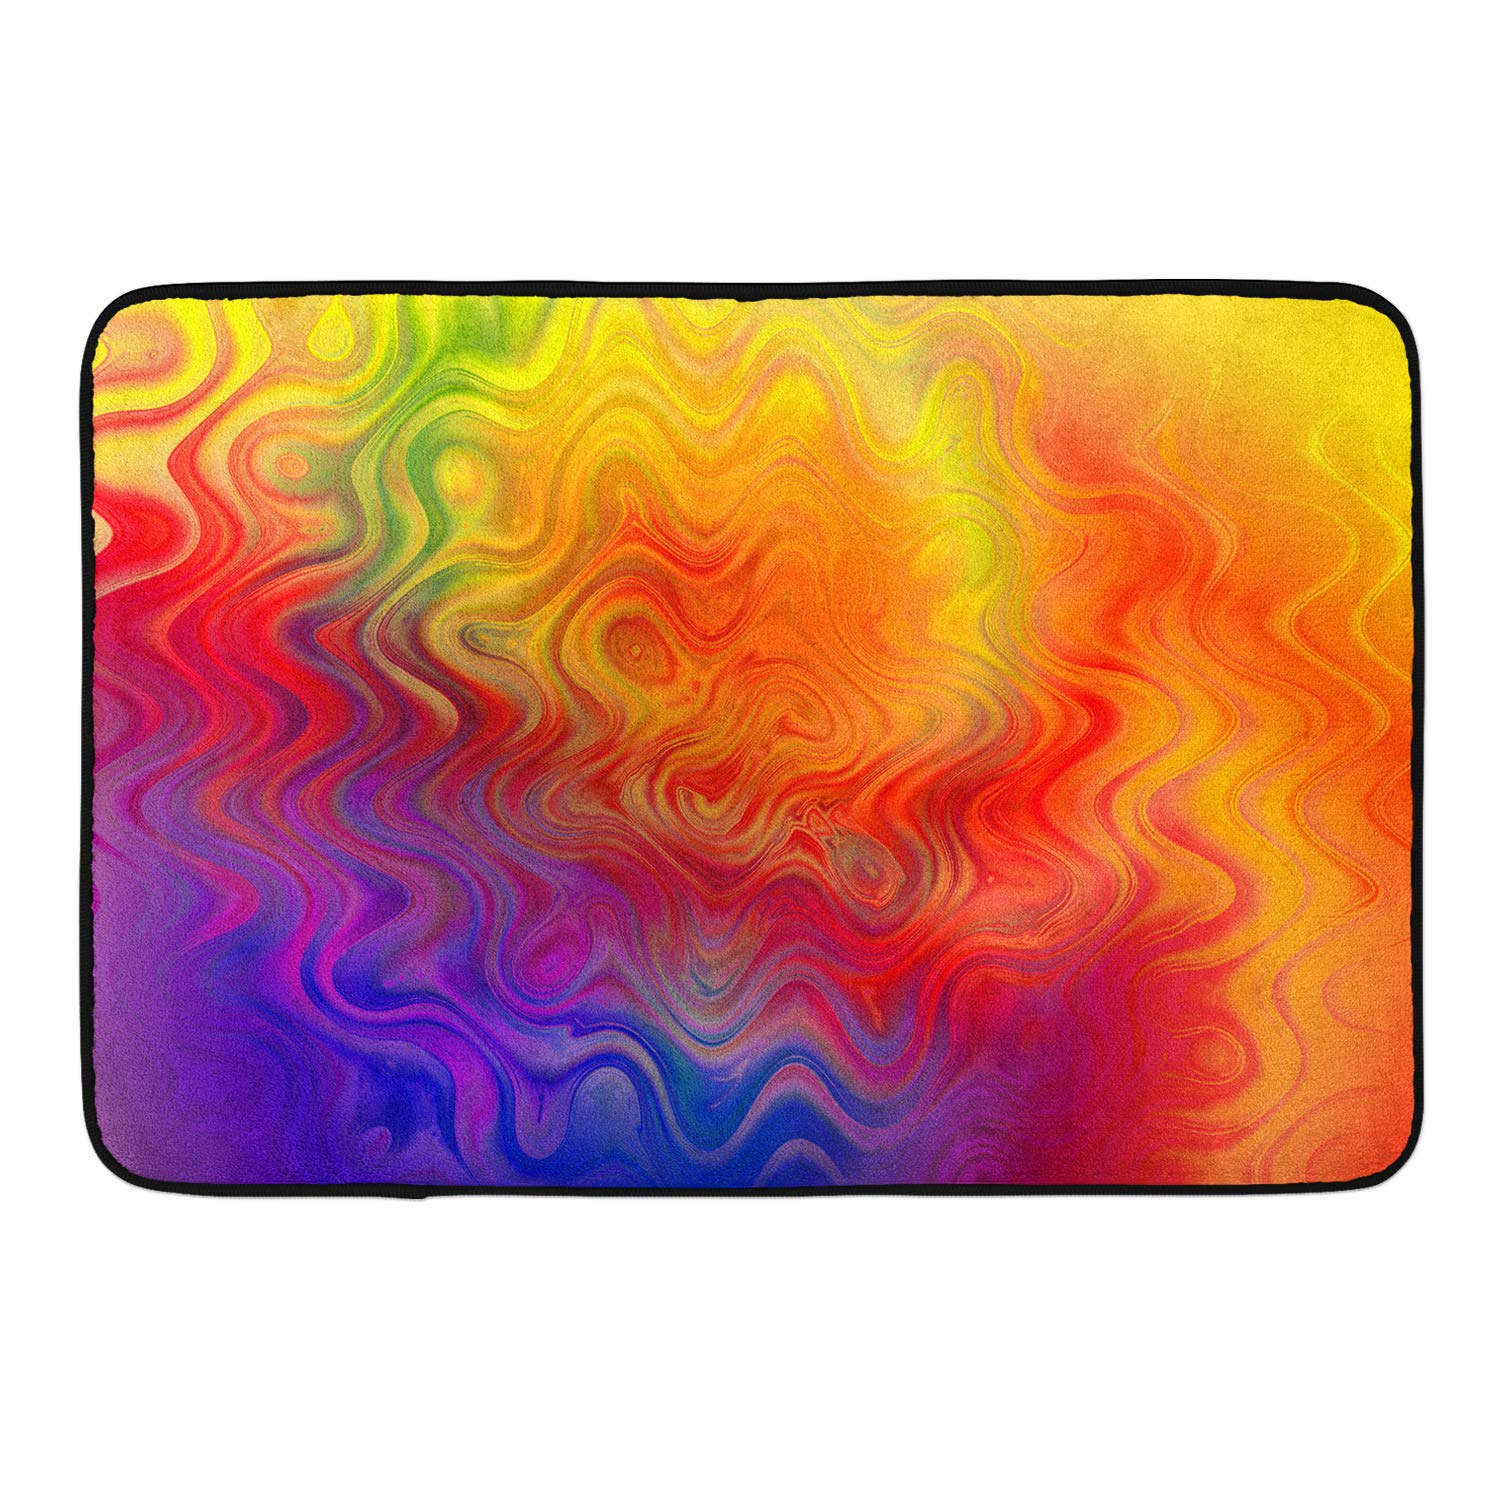 CIGOCI Anti-Skid Memory Foam Bathroom Rugs - 18 x 36 Inch, Extra Absorbent,Soft,Duarable and Quick-Dry Shaggy Rugs, 3D PrintPsychedelic Trippy Watercolor Bath Rug